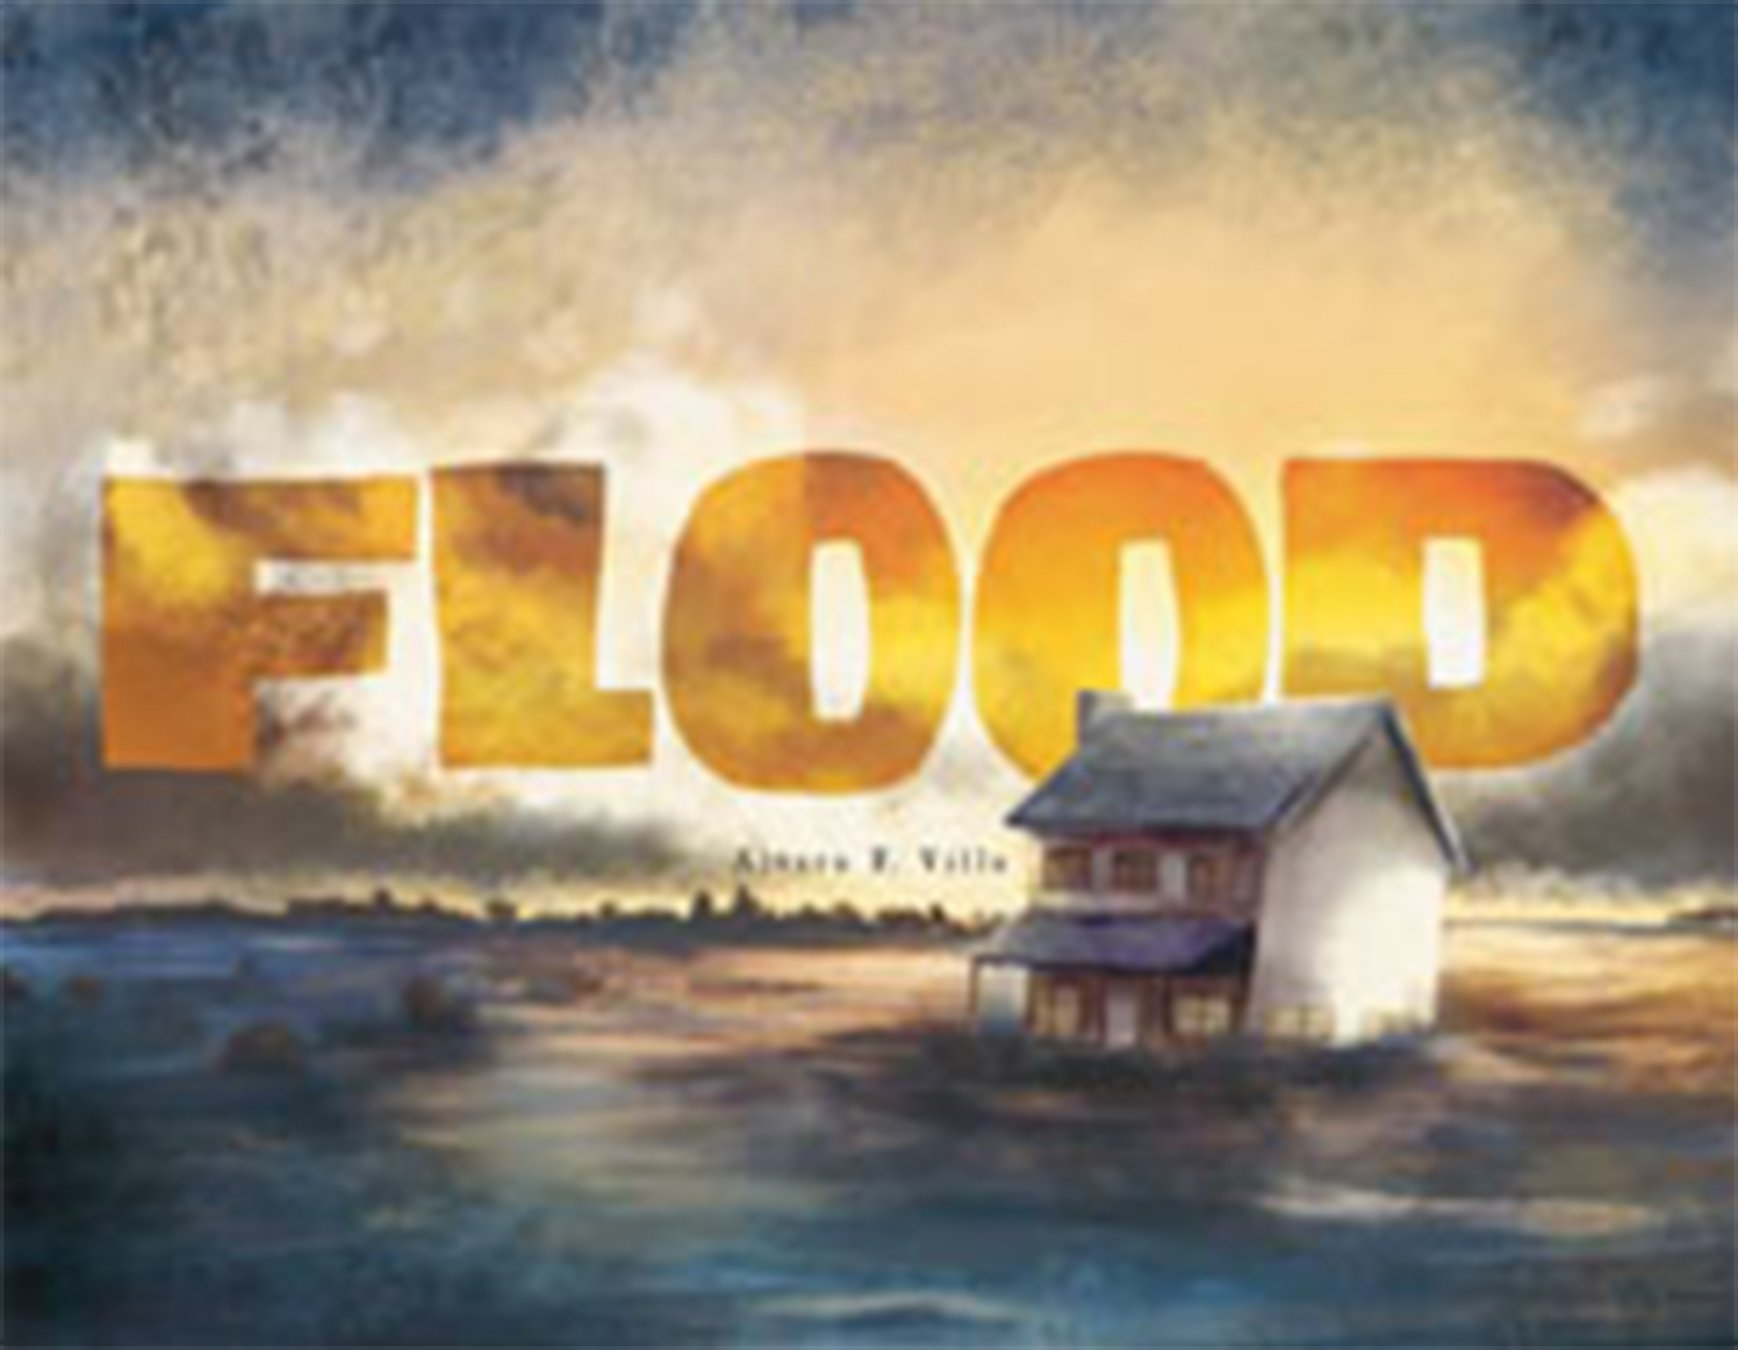 Image result for the flood alvaro villa